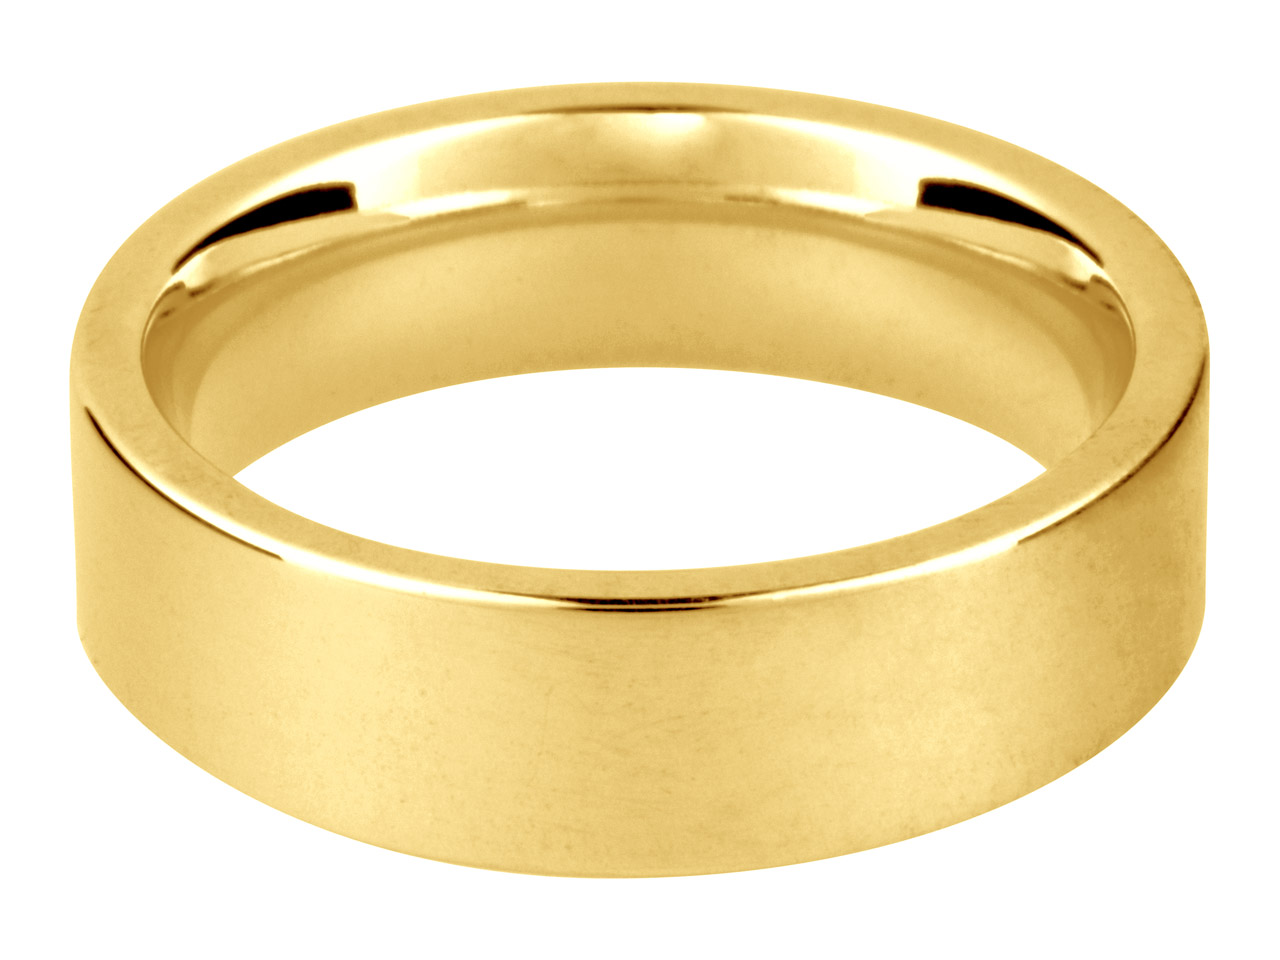 18ct Yellow Gold Easy Fit          Wedding Ring 4.0mm, Size O, 6.0g   Medium Weight, Hallmarked, Wall    Thickness 1.68mm, 100% Recycled    Gold